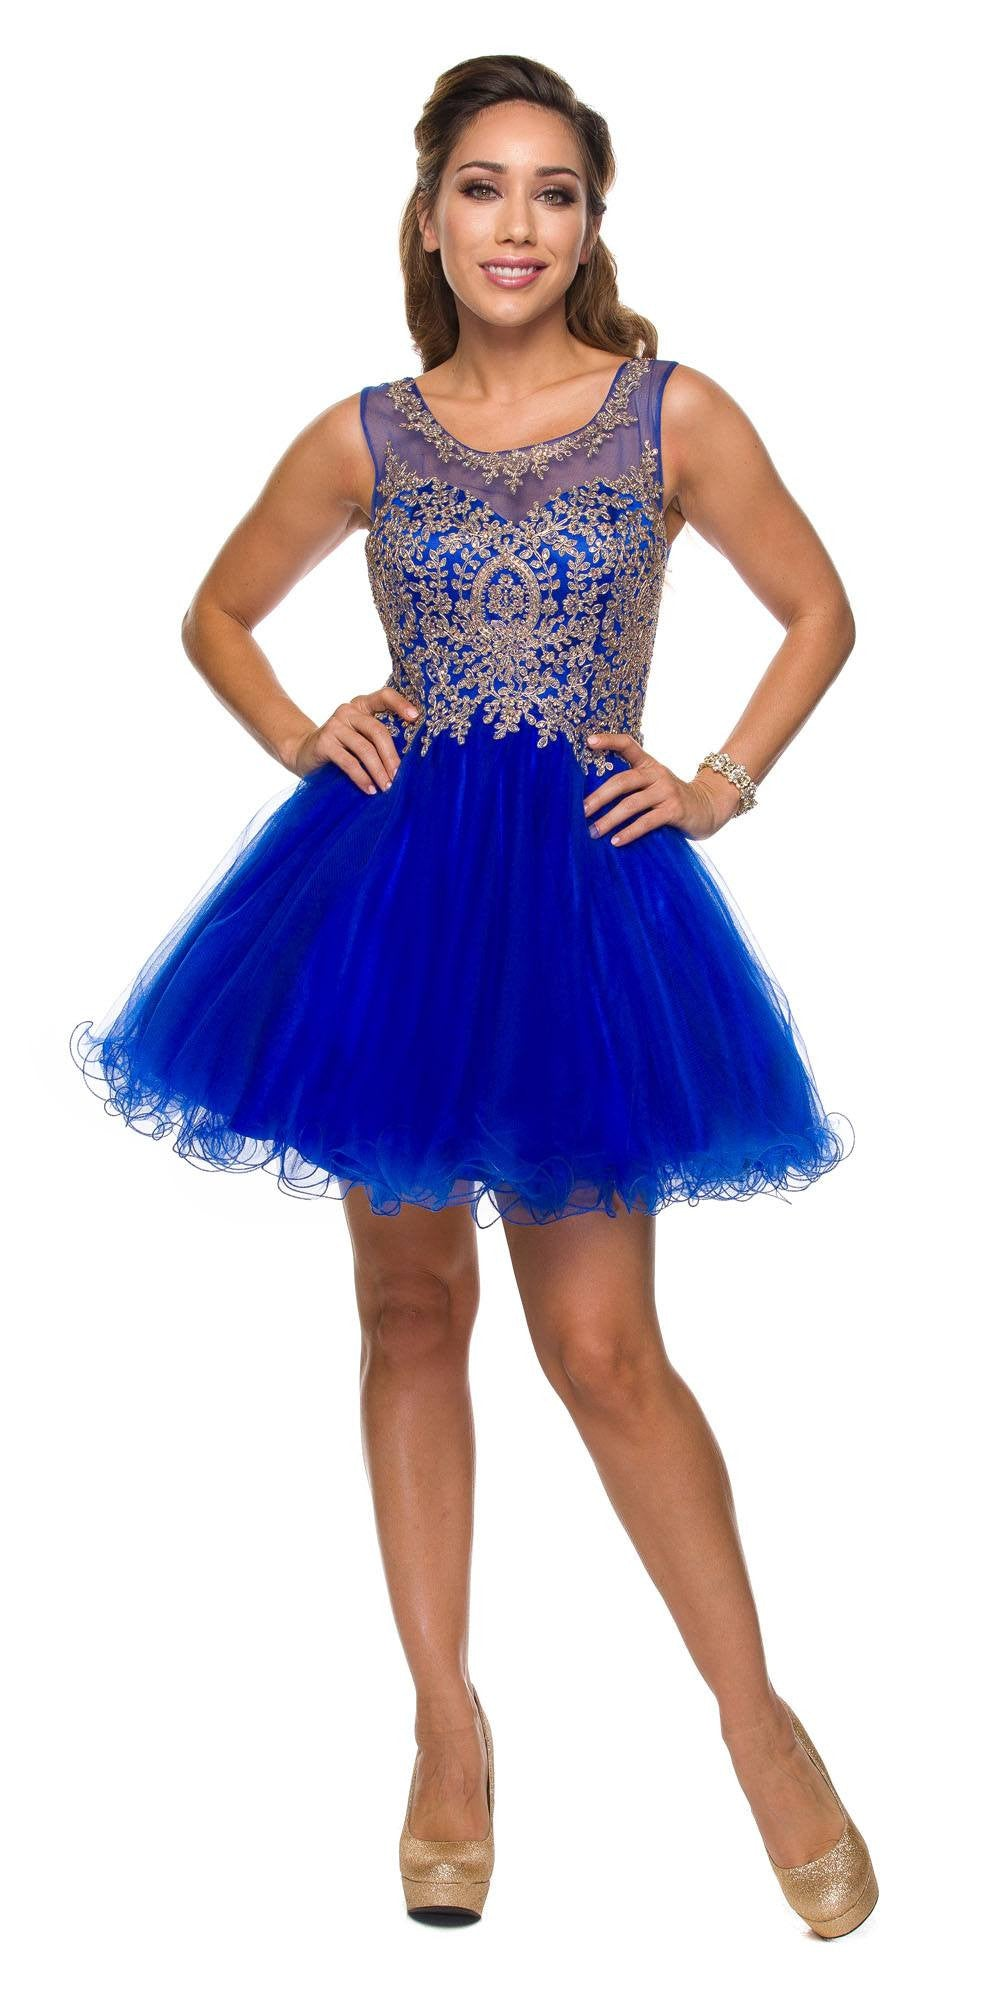 d80a3c977bd Juliet 758 Royal Blue Gold Applique Embroidery Tulle Homecoming Dress.  Touch to zoom